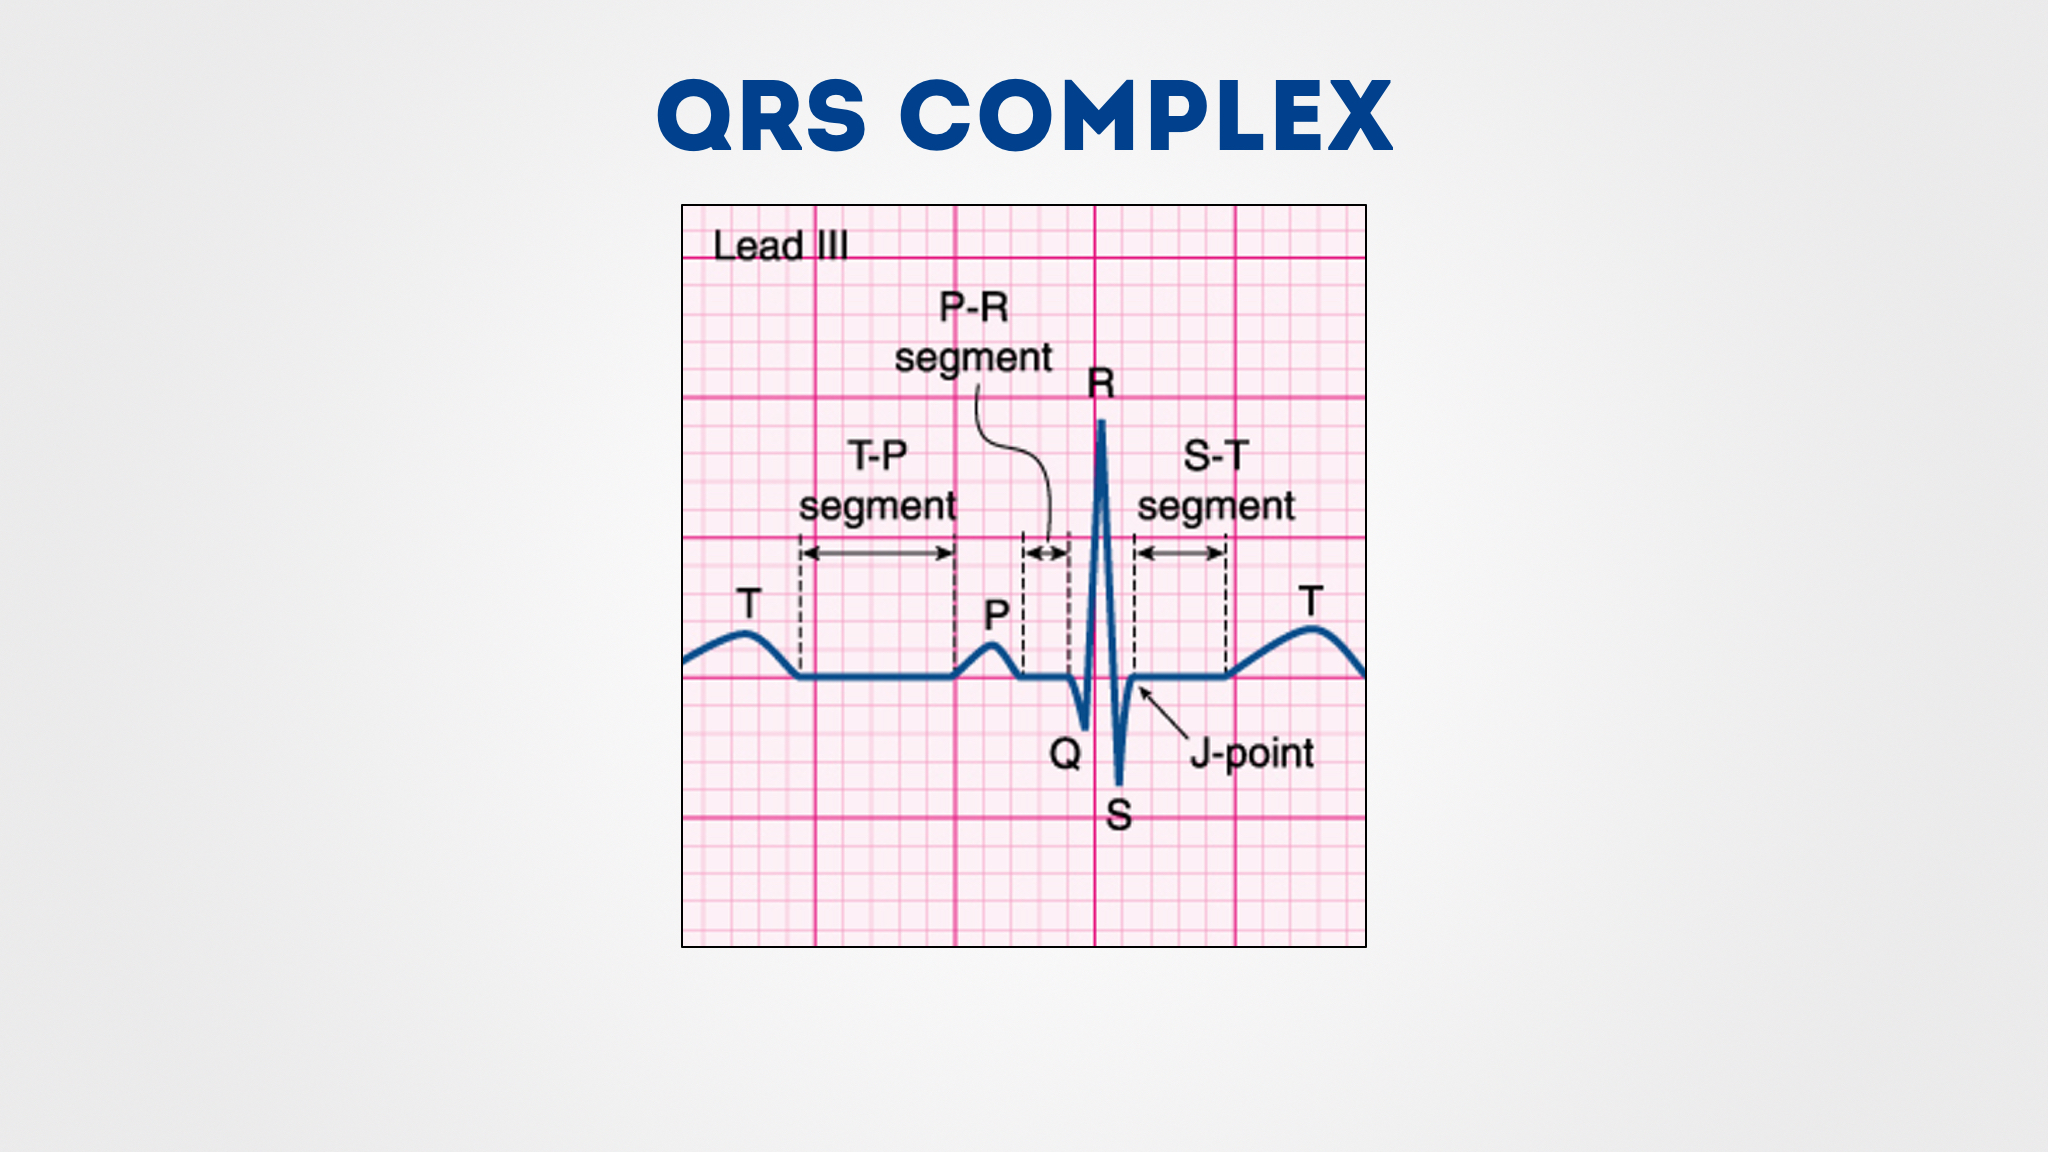 Qrs Complex    Diagram         Wiring       Schematic       Diagram